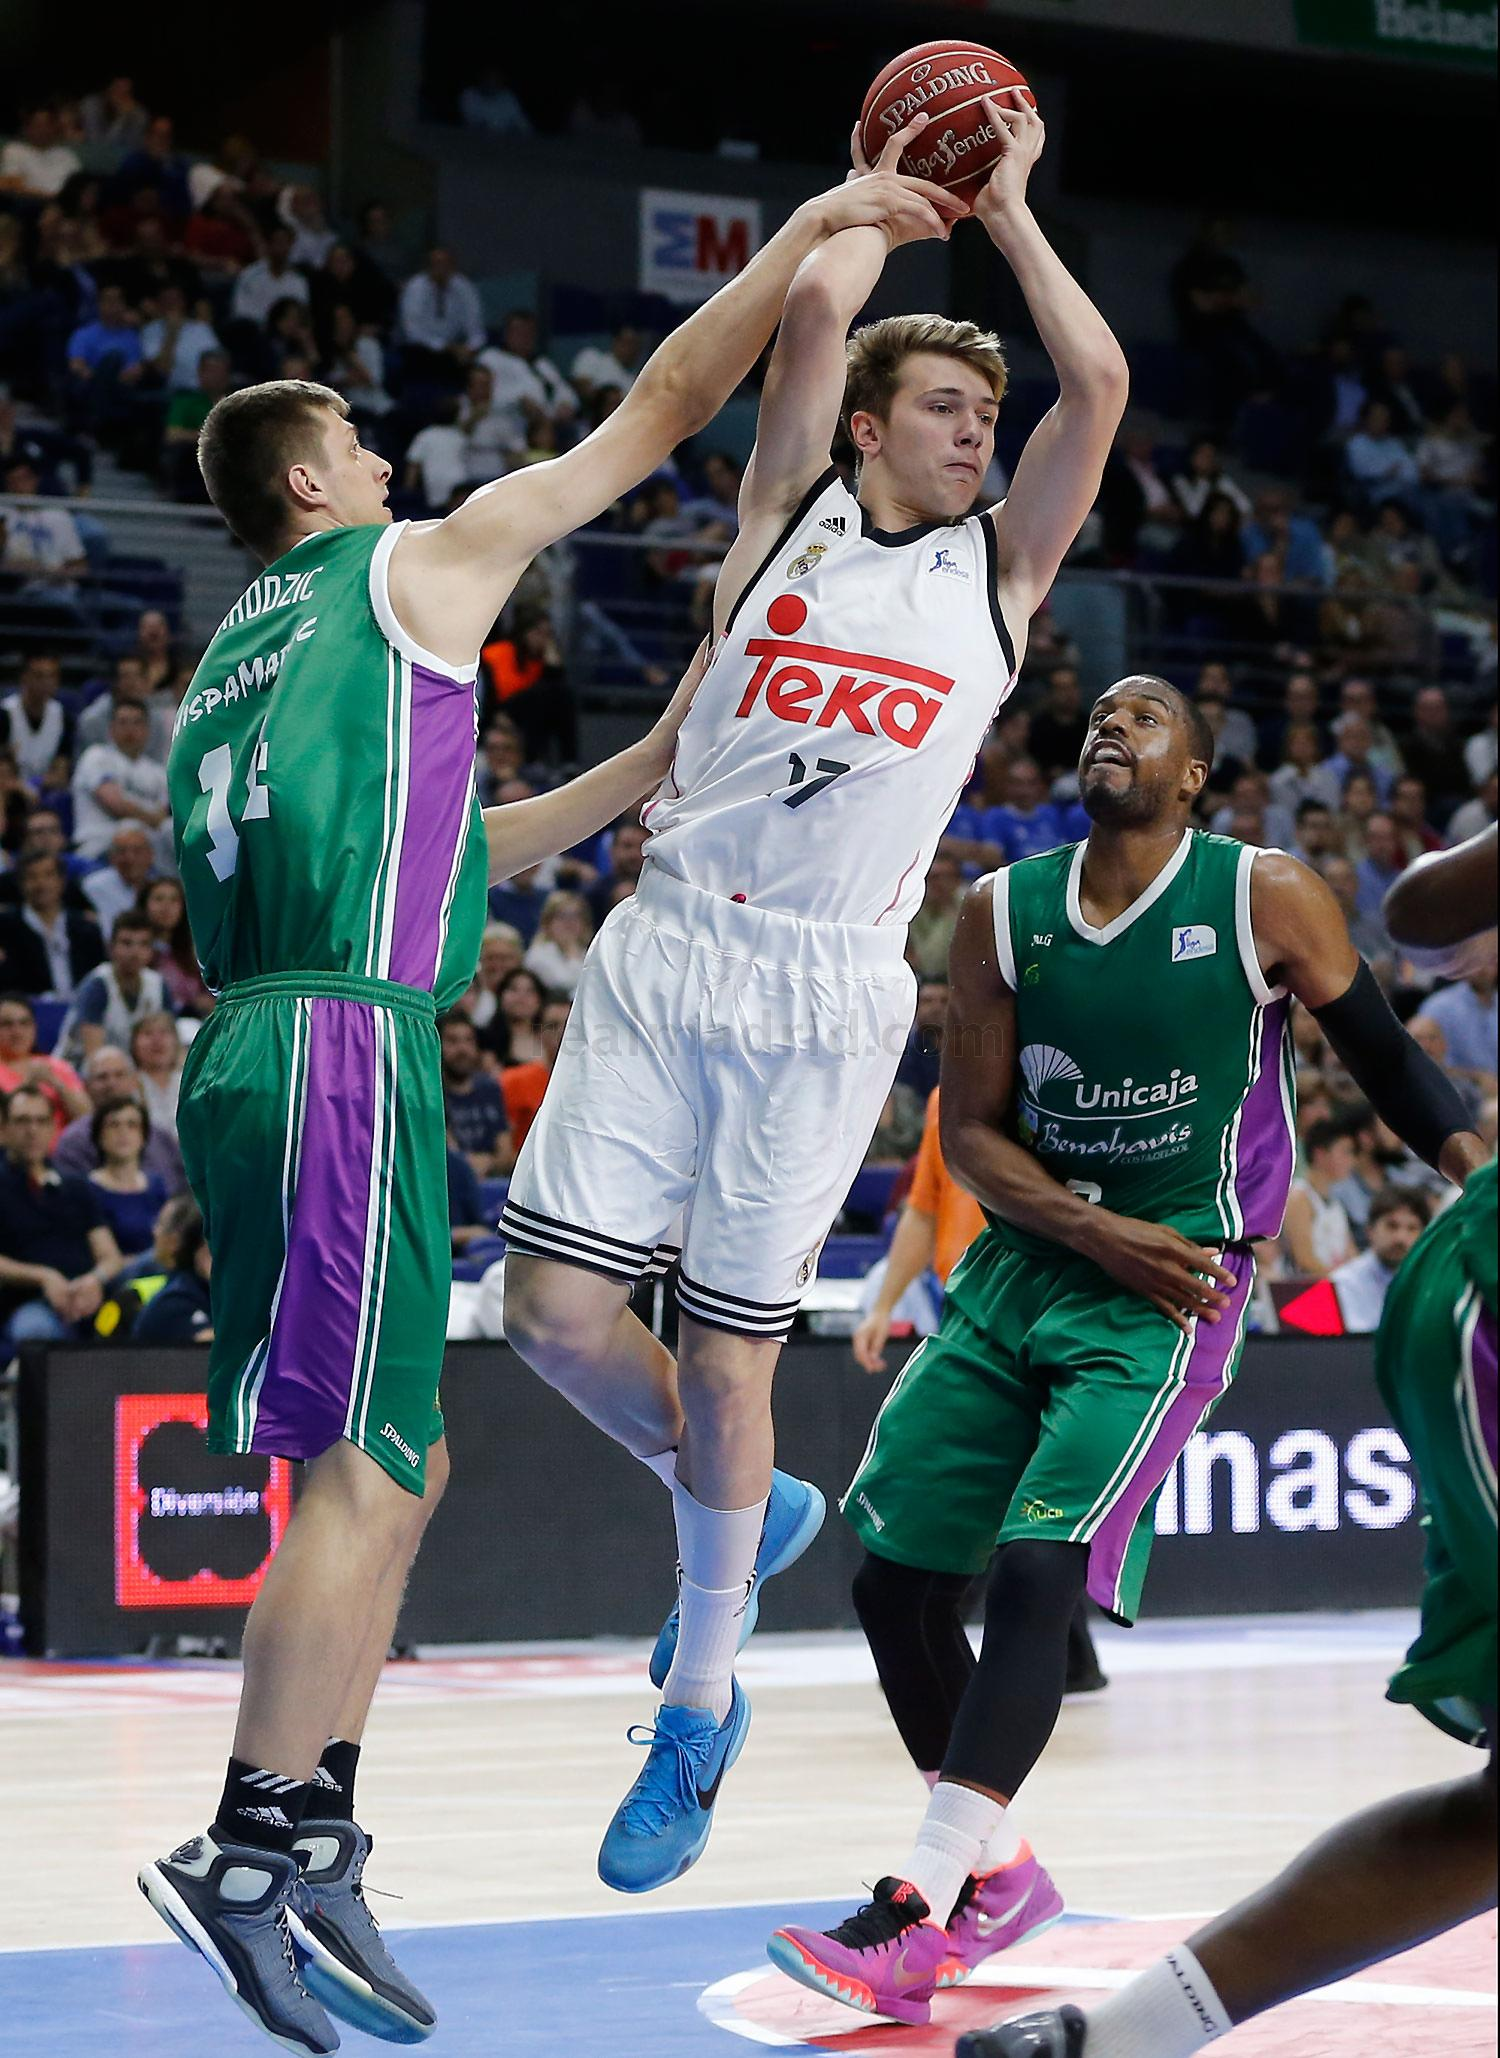 Real Madrid - Real Madrid - Unicaja - 30-04-2015